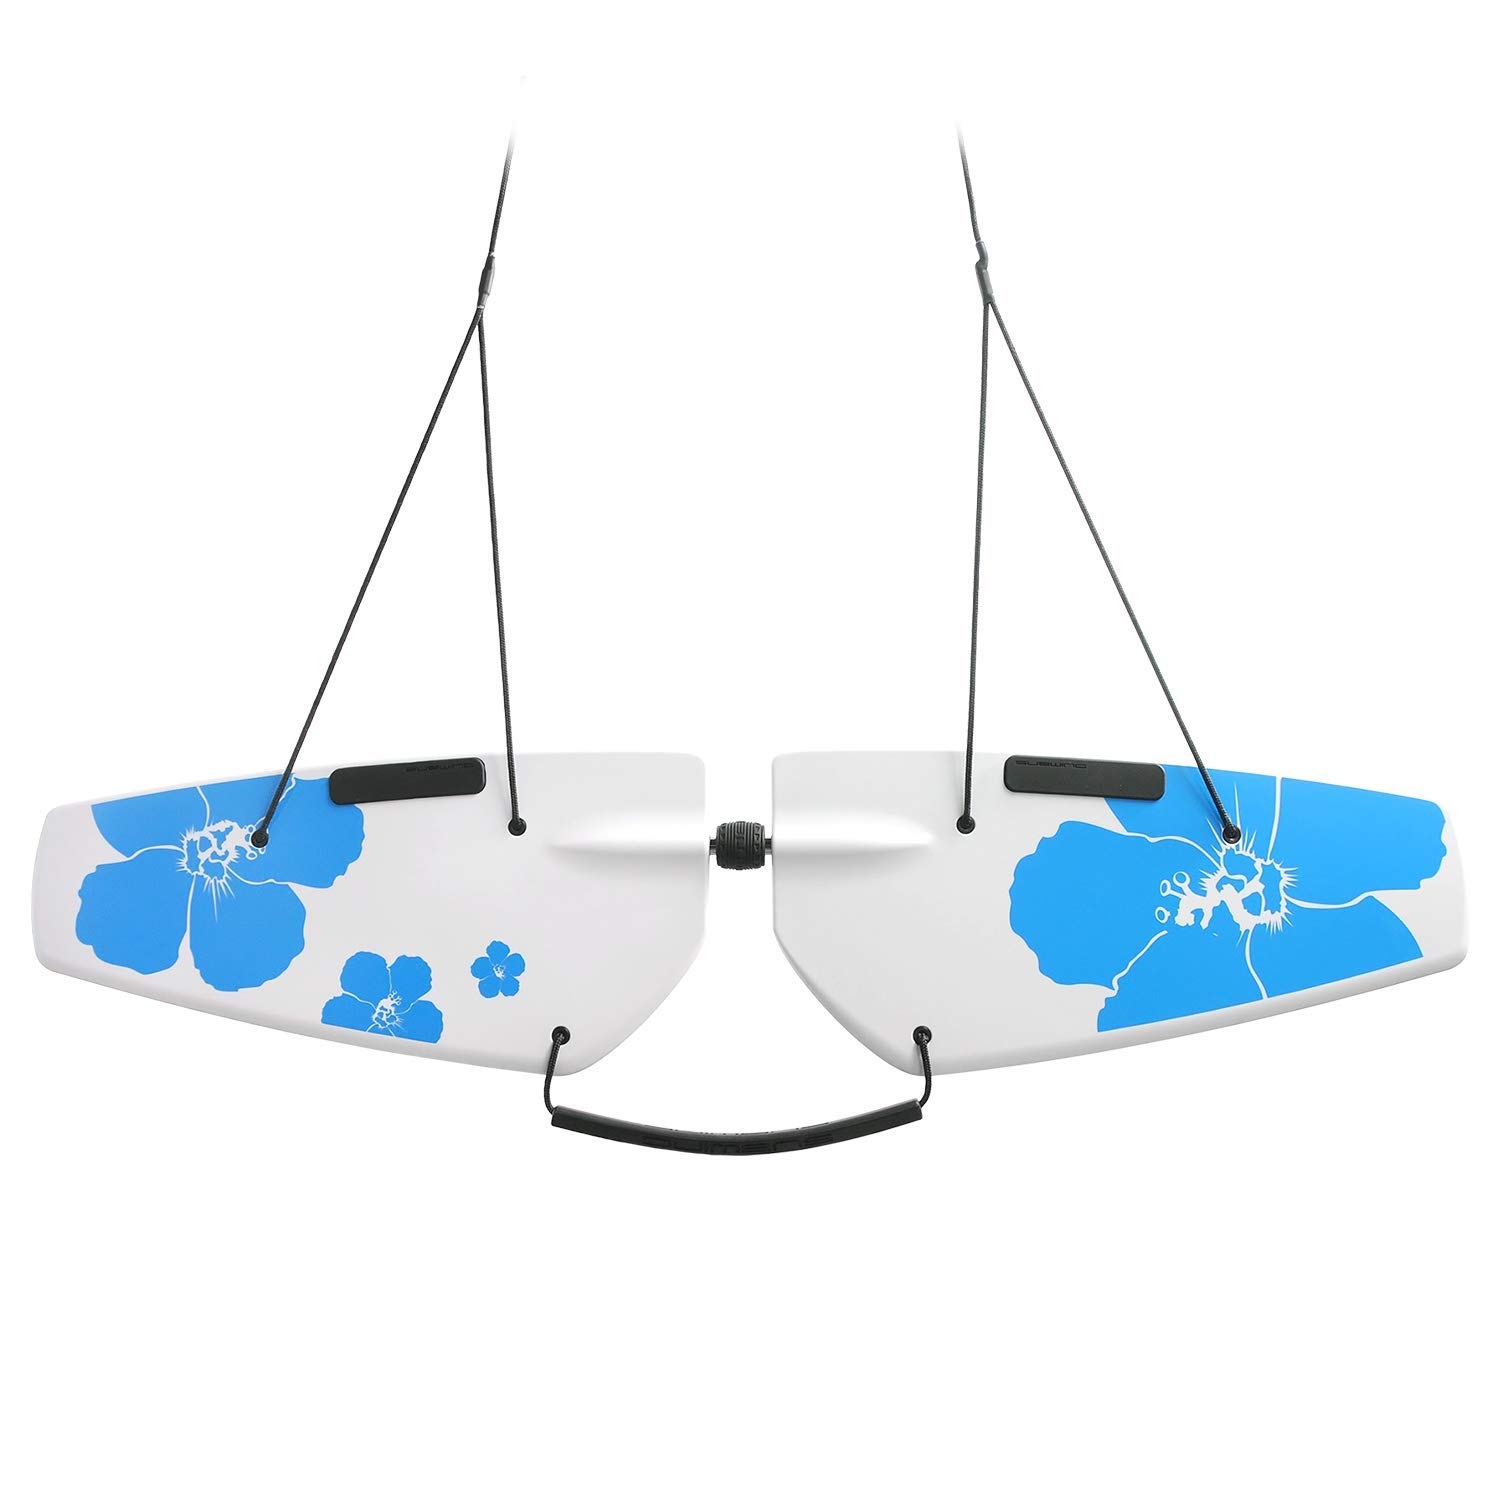 Subwing - Fly Under Water - Towable Watersports Board for Boats - 1, 2, 3, 4 Person Tow - Alternative Pull Behind to Water Skiing, Flying Tubes & Tube Floats by Subwing